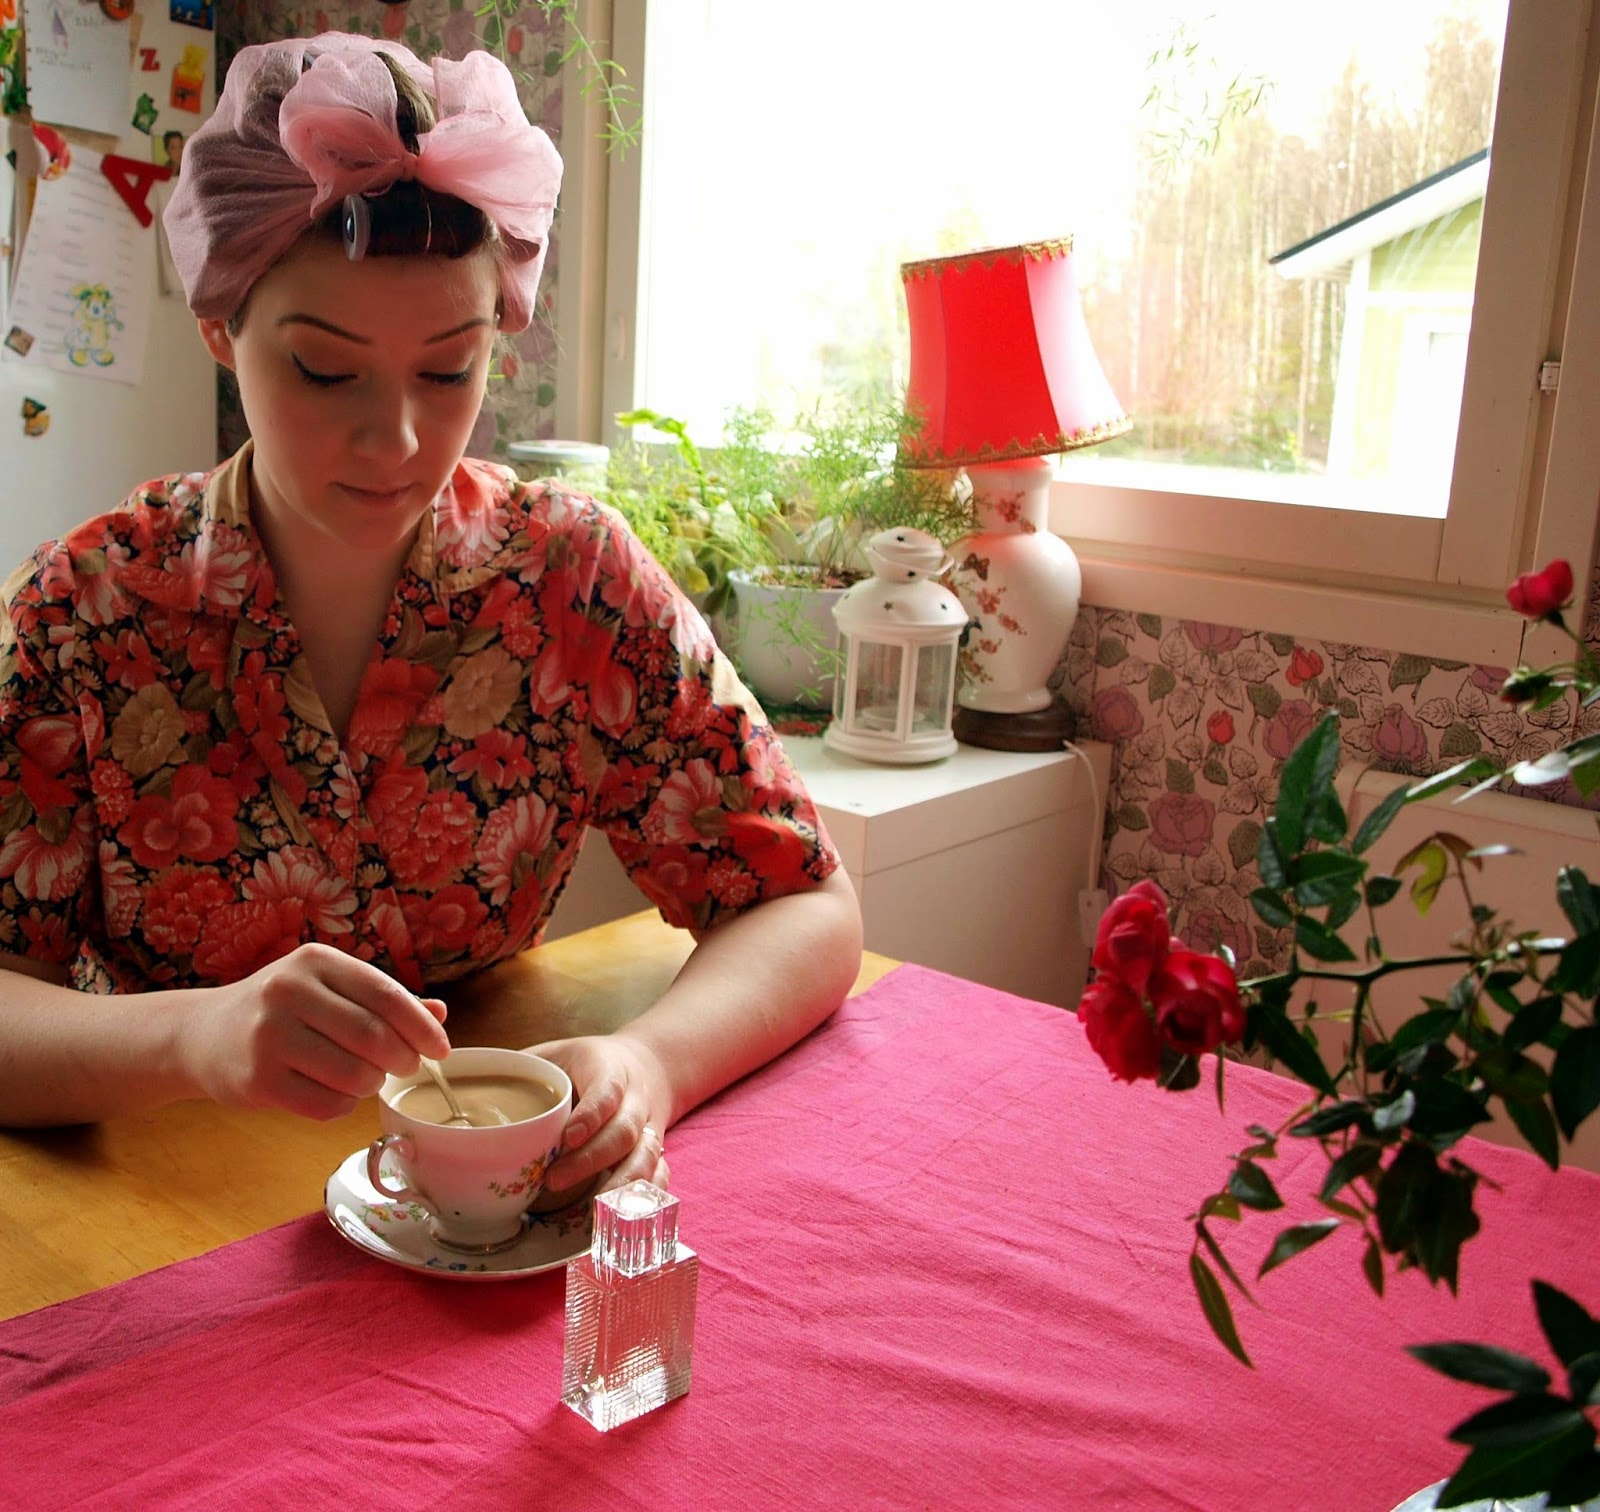 vintage 60's dressing gown robe pink floral rollers scaf cup roses burberry brit mother's mother